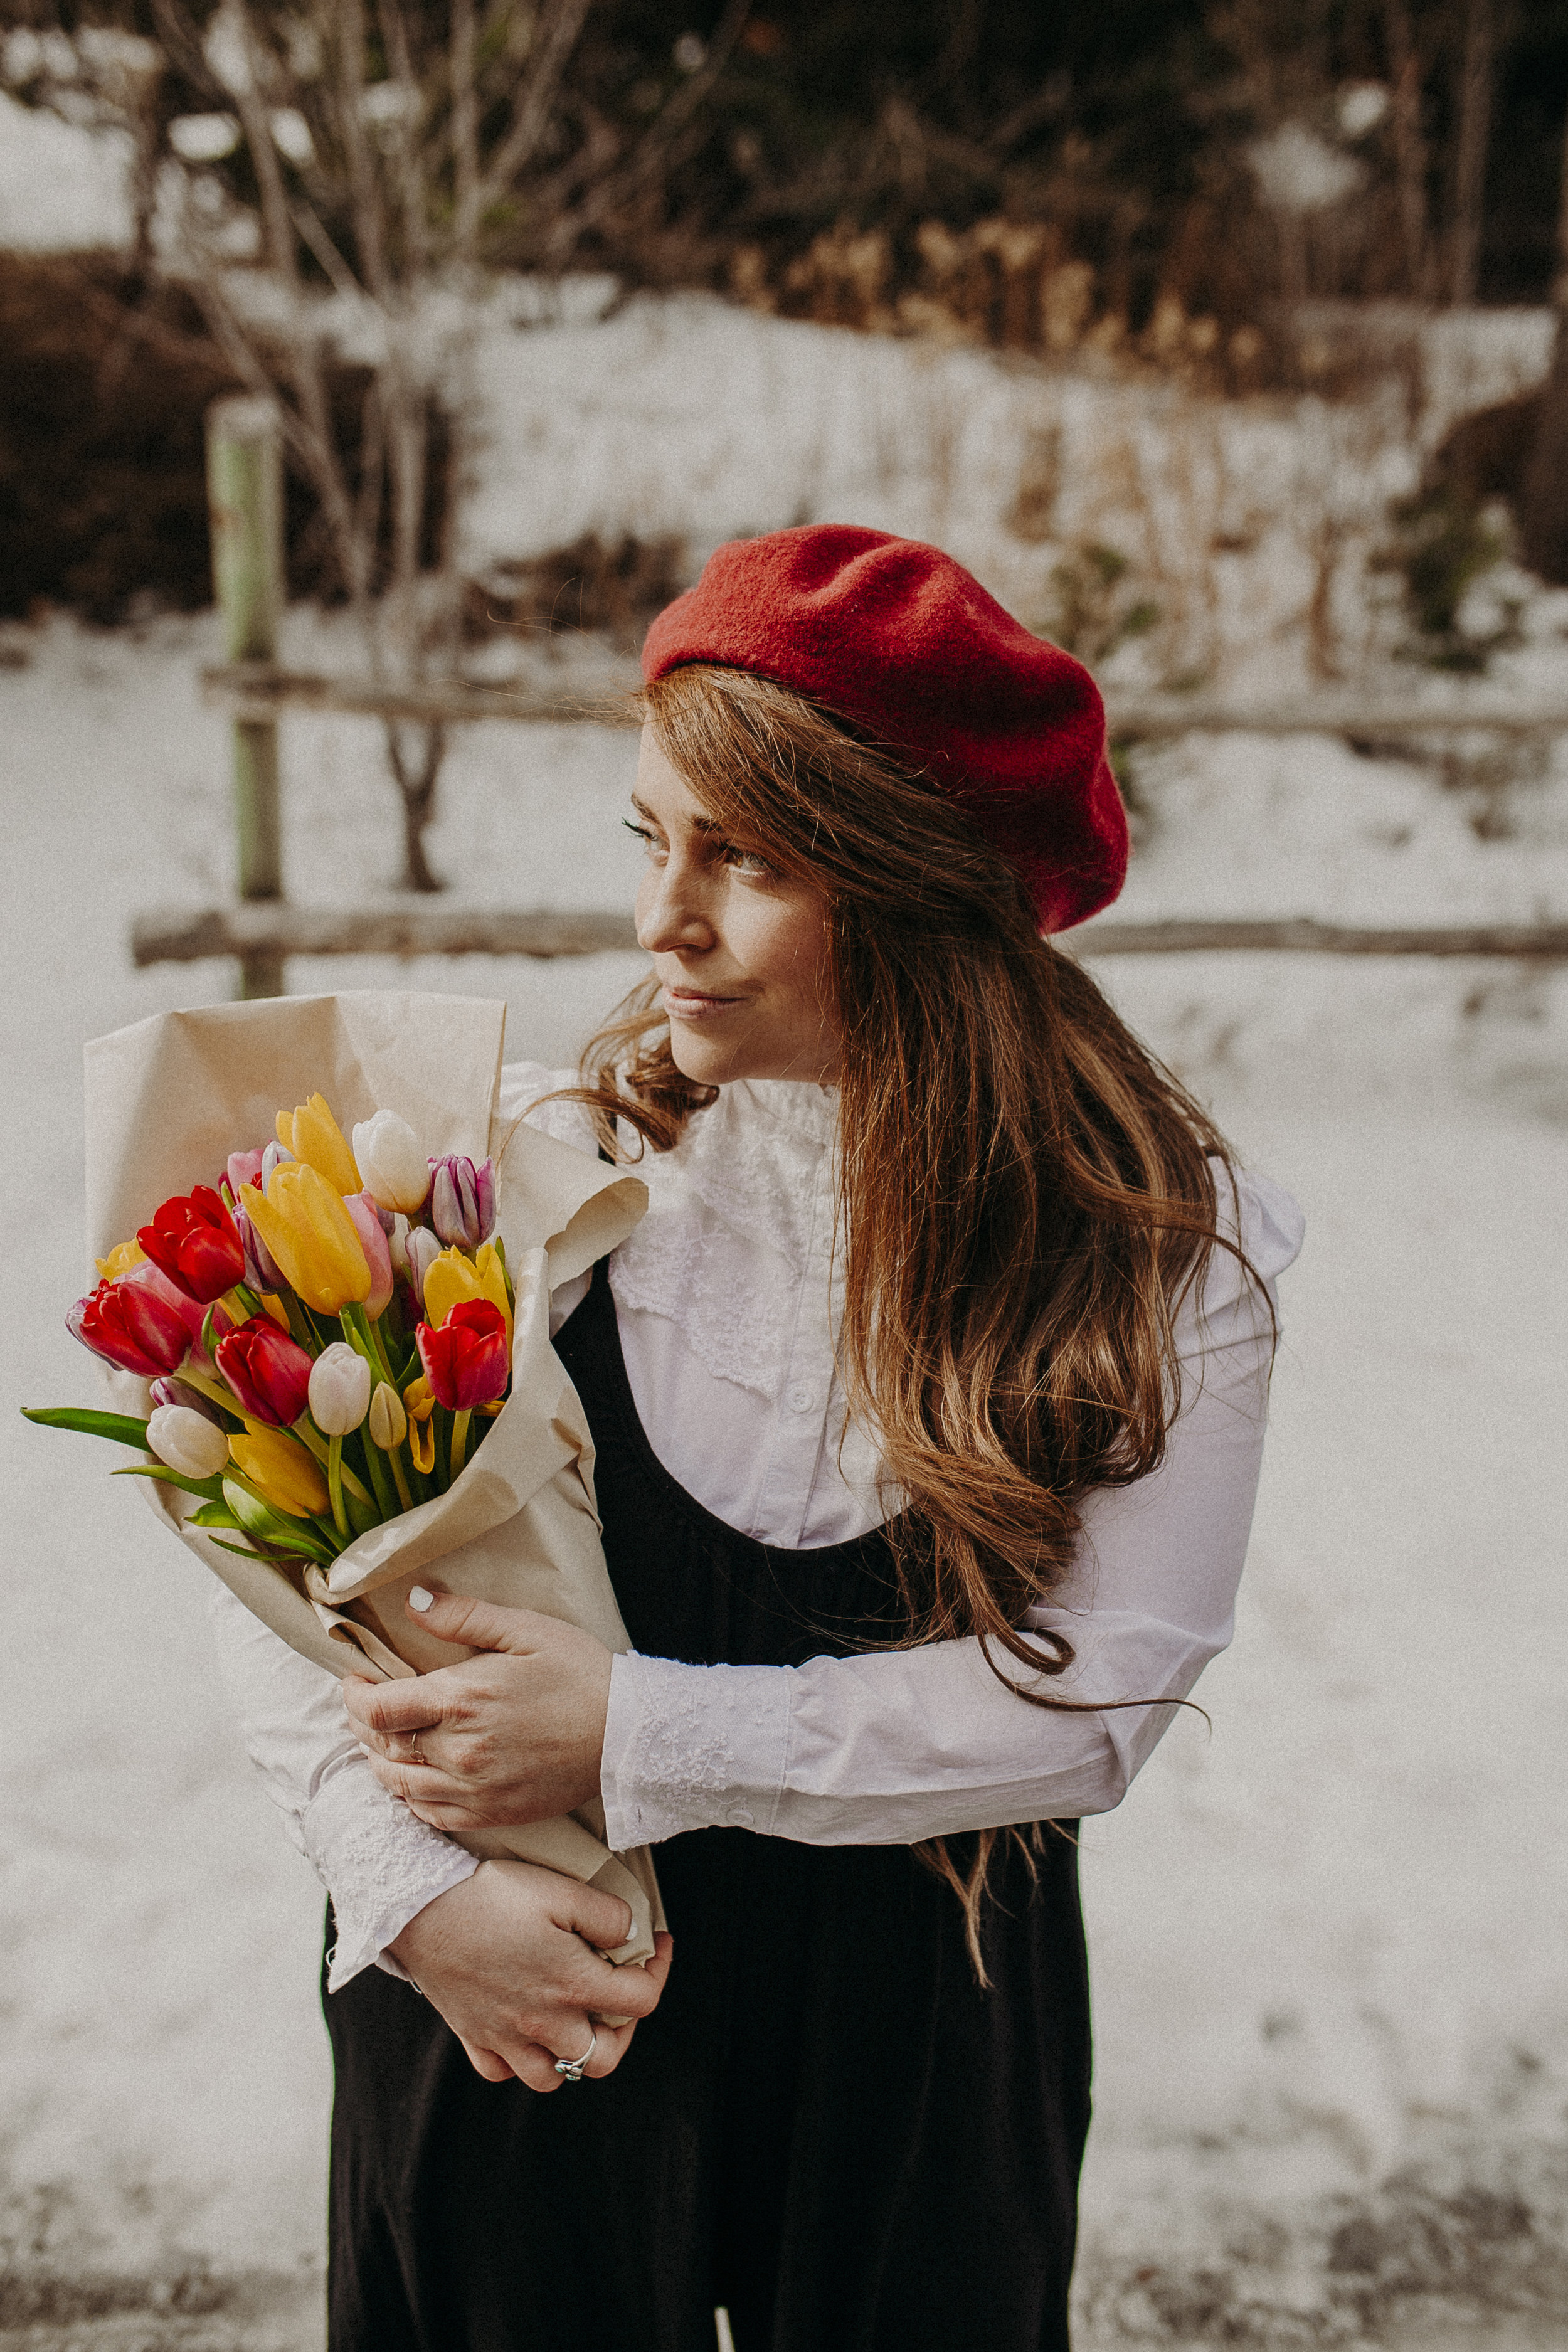 the-bouqs-flower-delivery-service-review-16.jpg